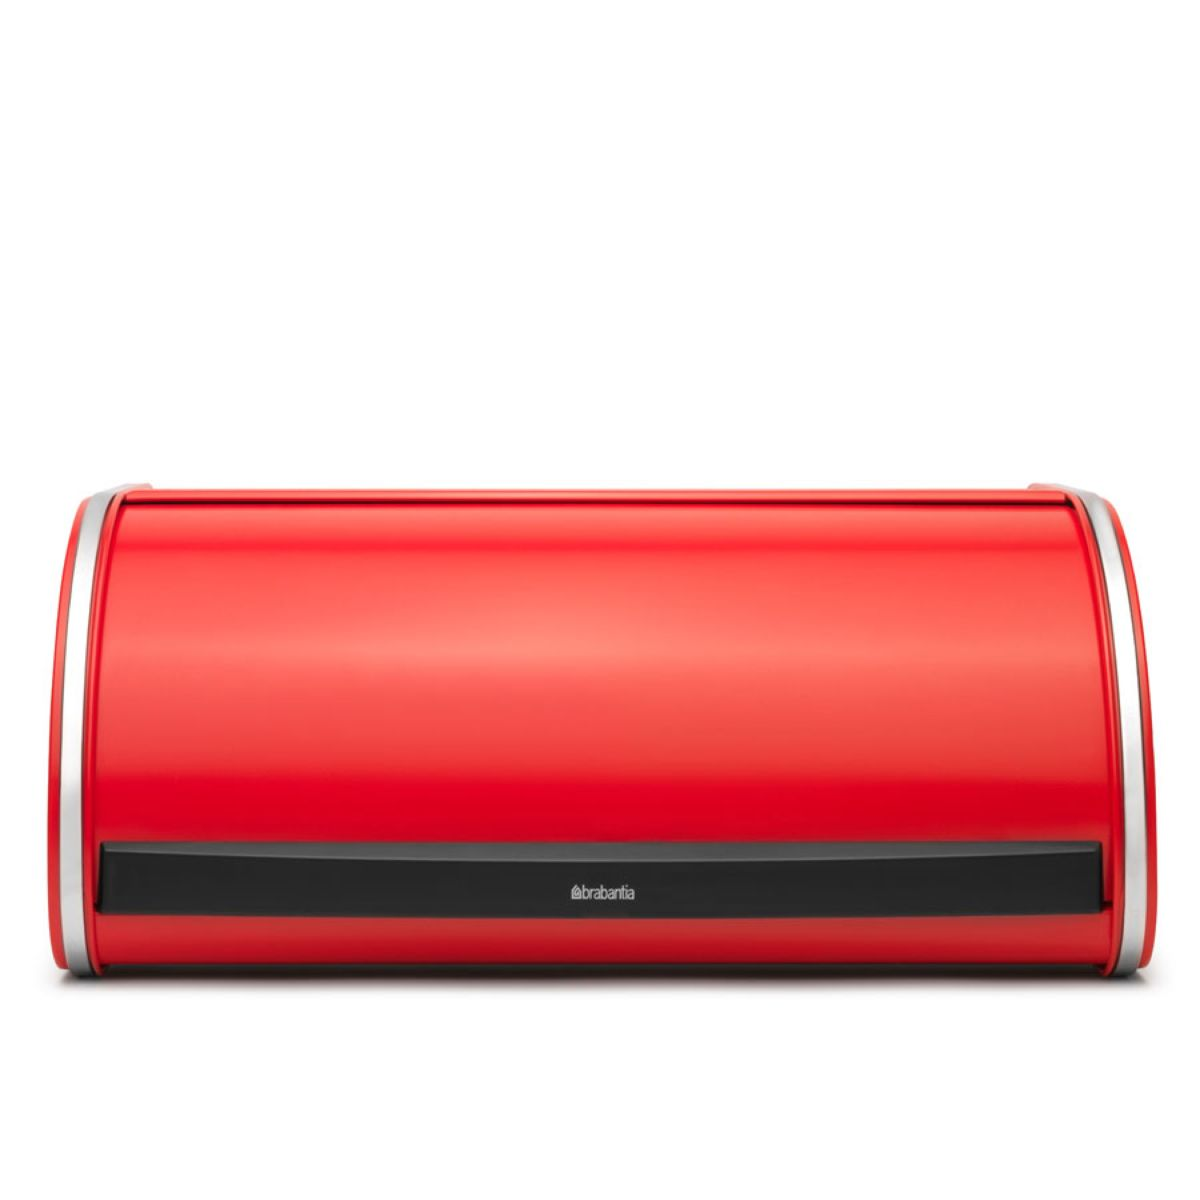 Brabantia Large Roll Flat Top Bread Bin - Passion Red